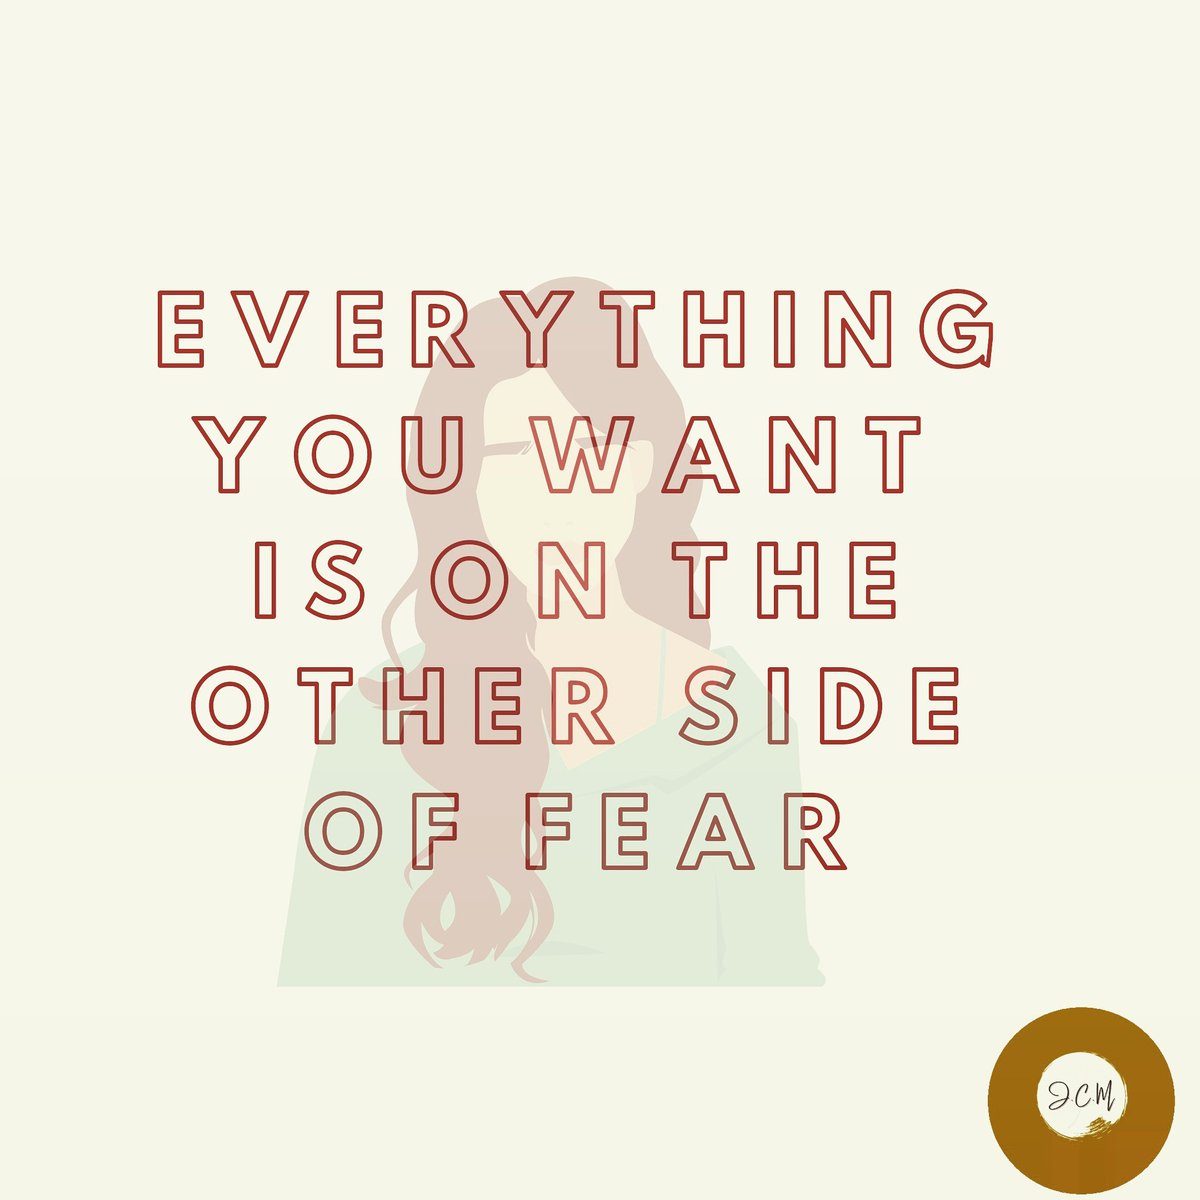 Don't let fear get in the way of what you want. #😳  . . . .  #motivation #inspiration  #life #quotes #instagood #lifestyle #success #motivationalquotes #instagram #believe #positivevibes #mindset #happy #happiness #selflove  #socialmediamanager #socialmediamarketing https://t.co/K5pNZOoV7v